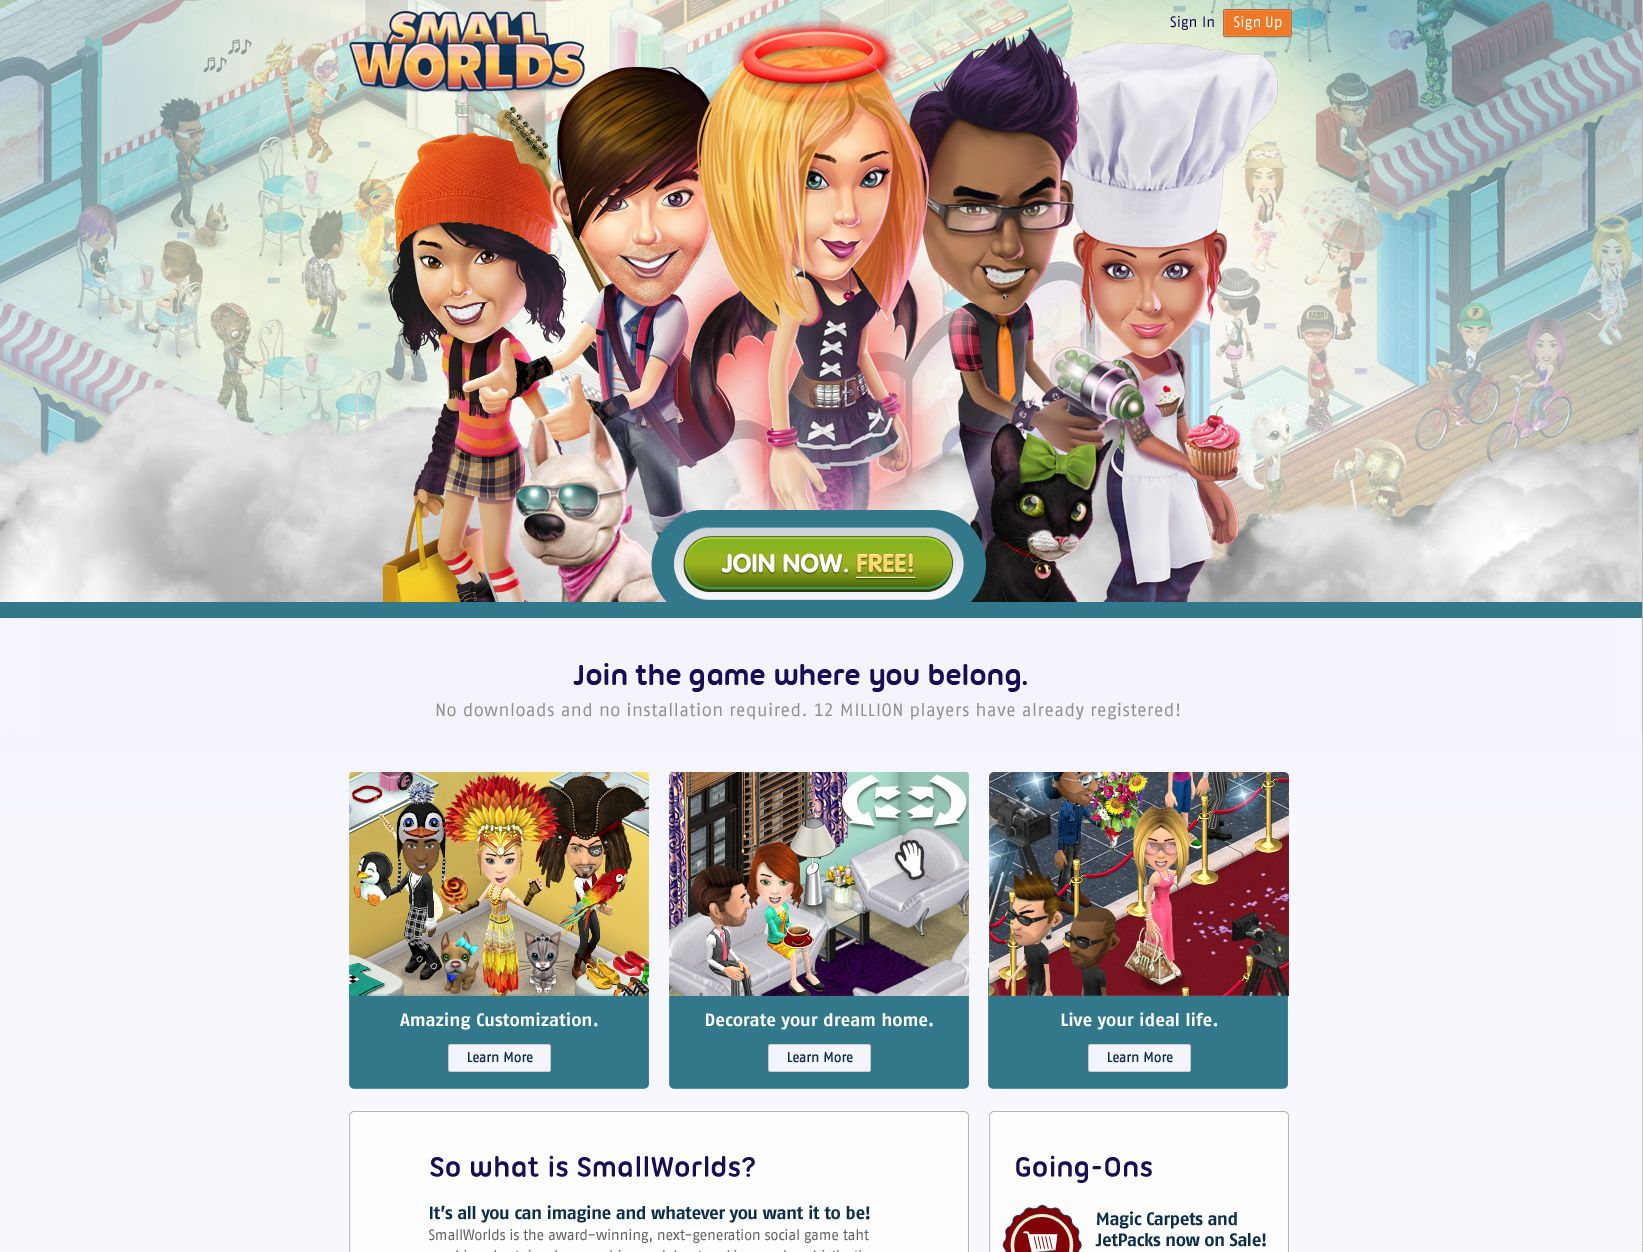 SmallWorlds The Game Where You Belong! Play free now at